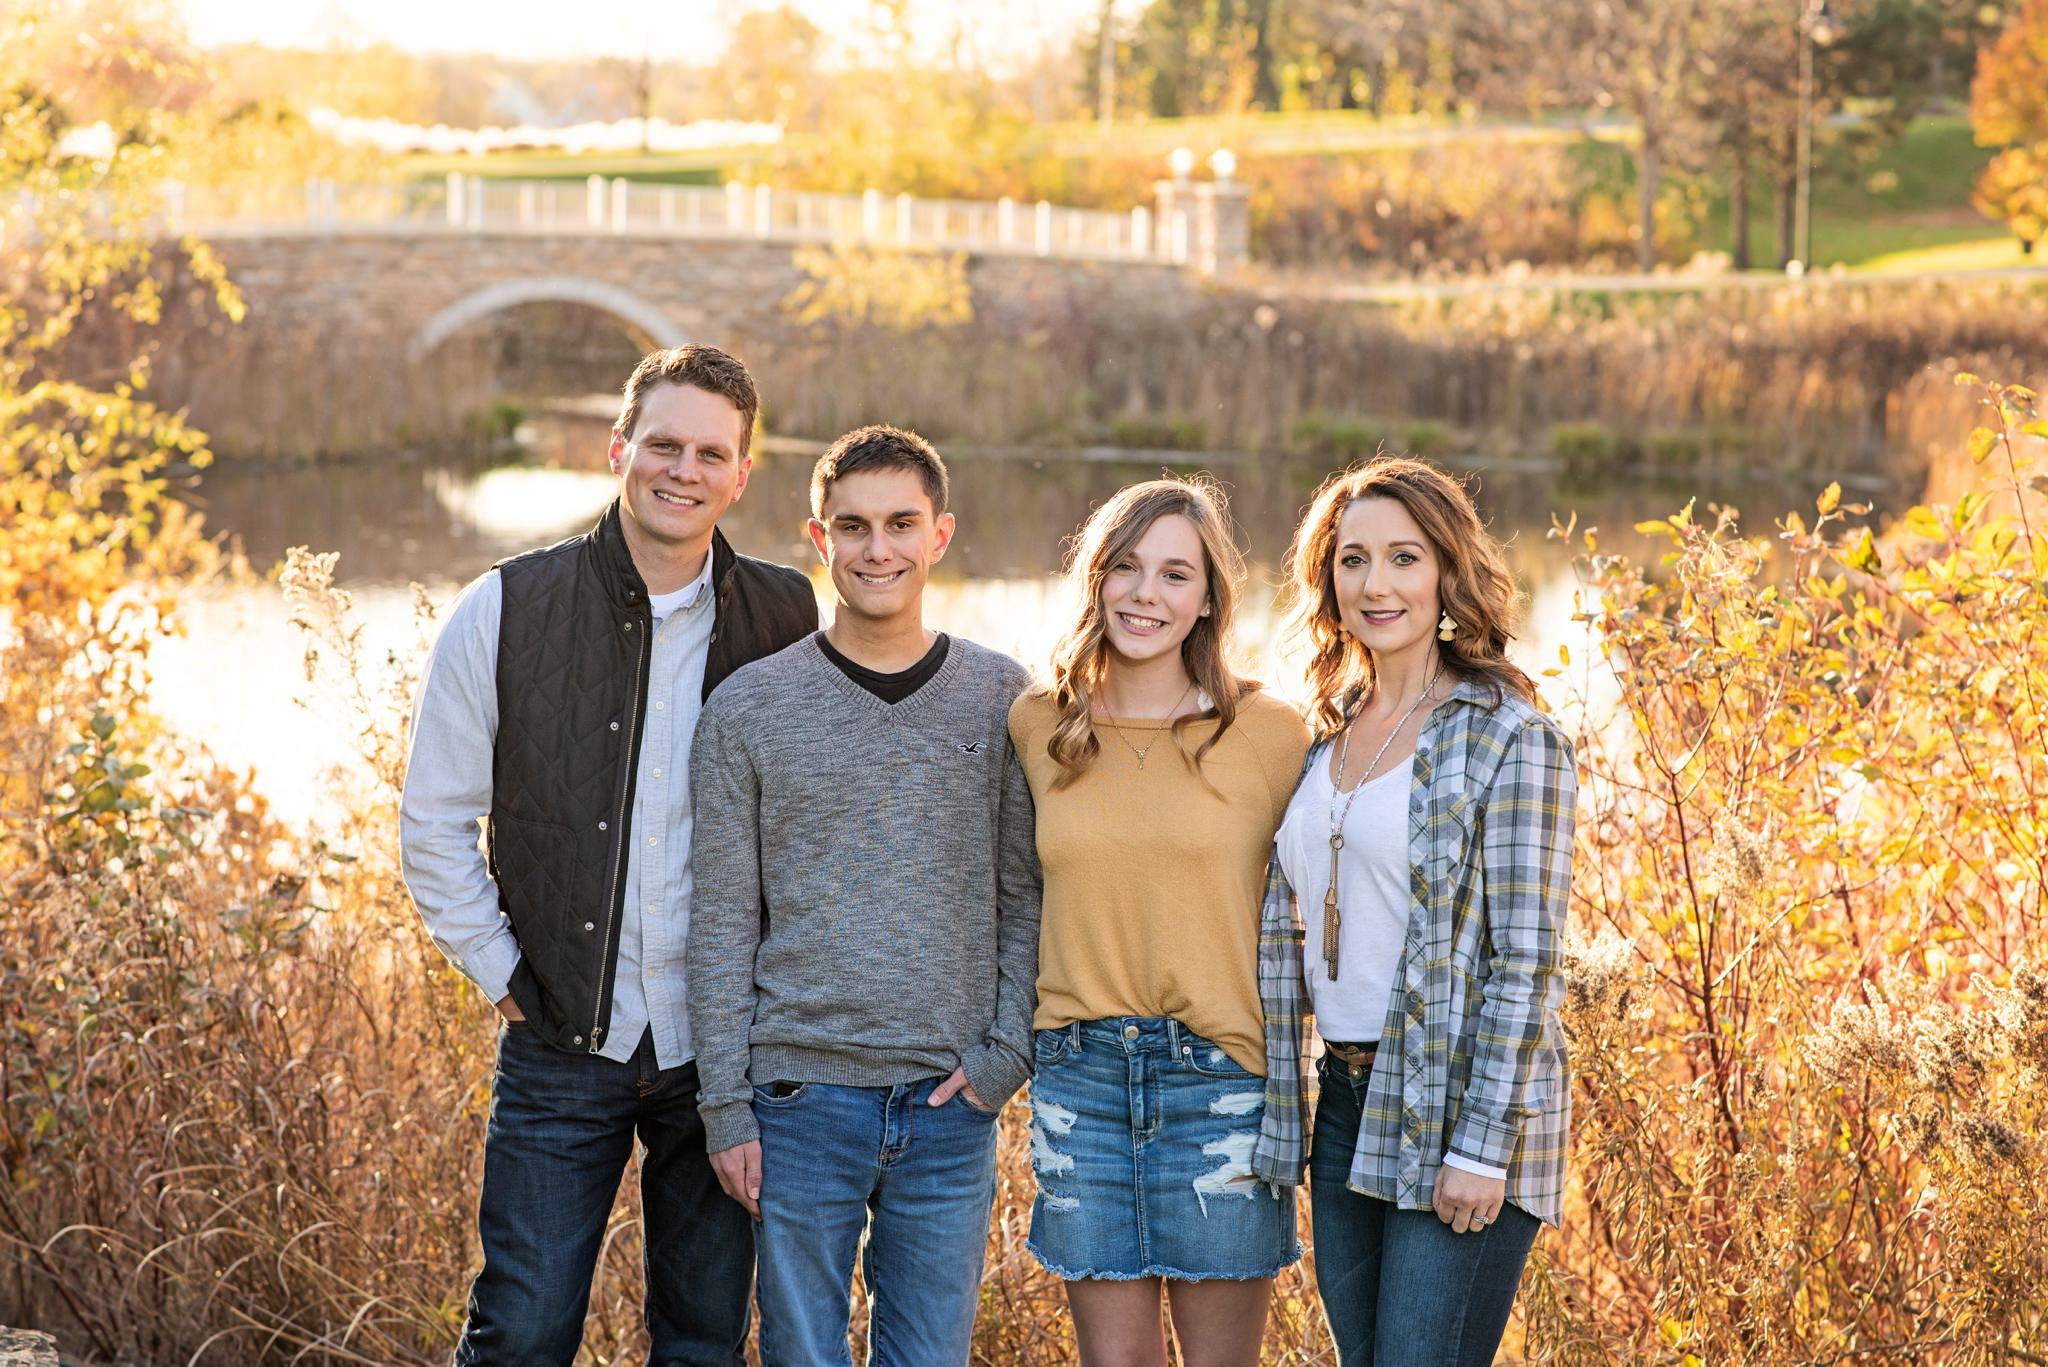 Wittwer-Family-Rotella-Photography-2018-10_WEB.jpg